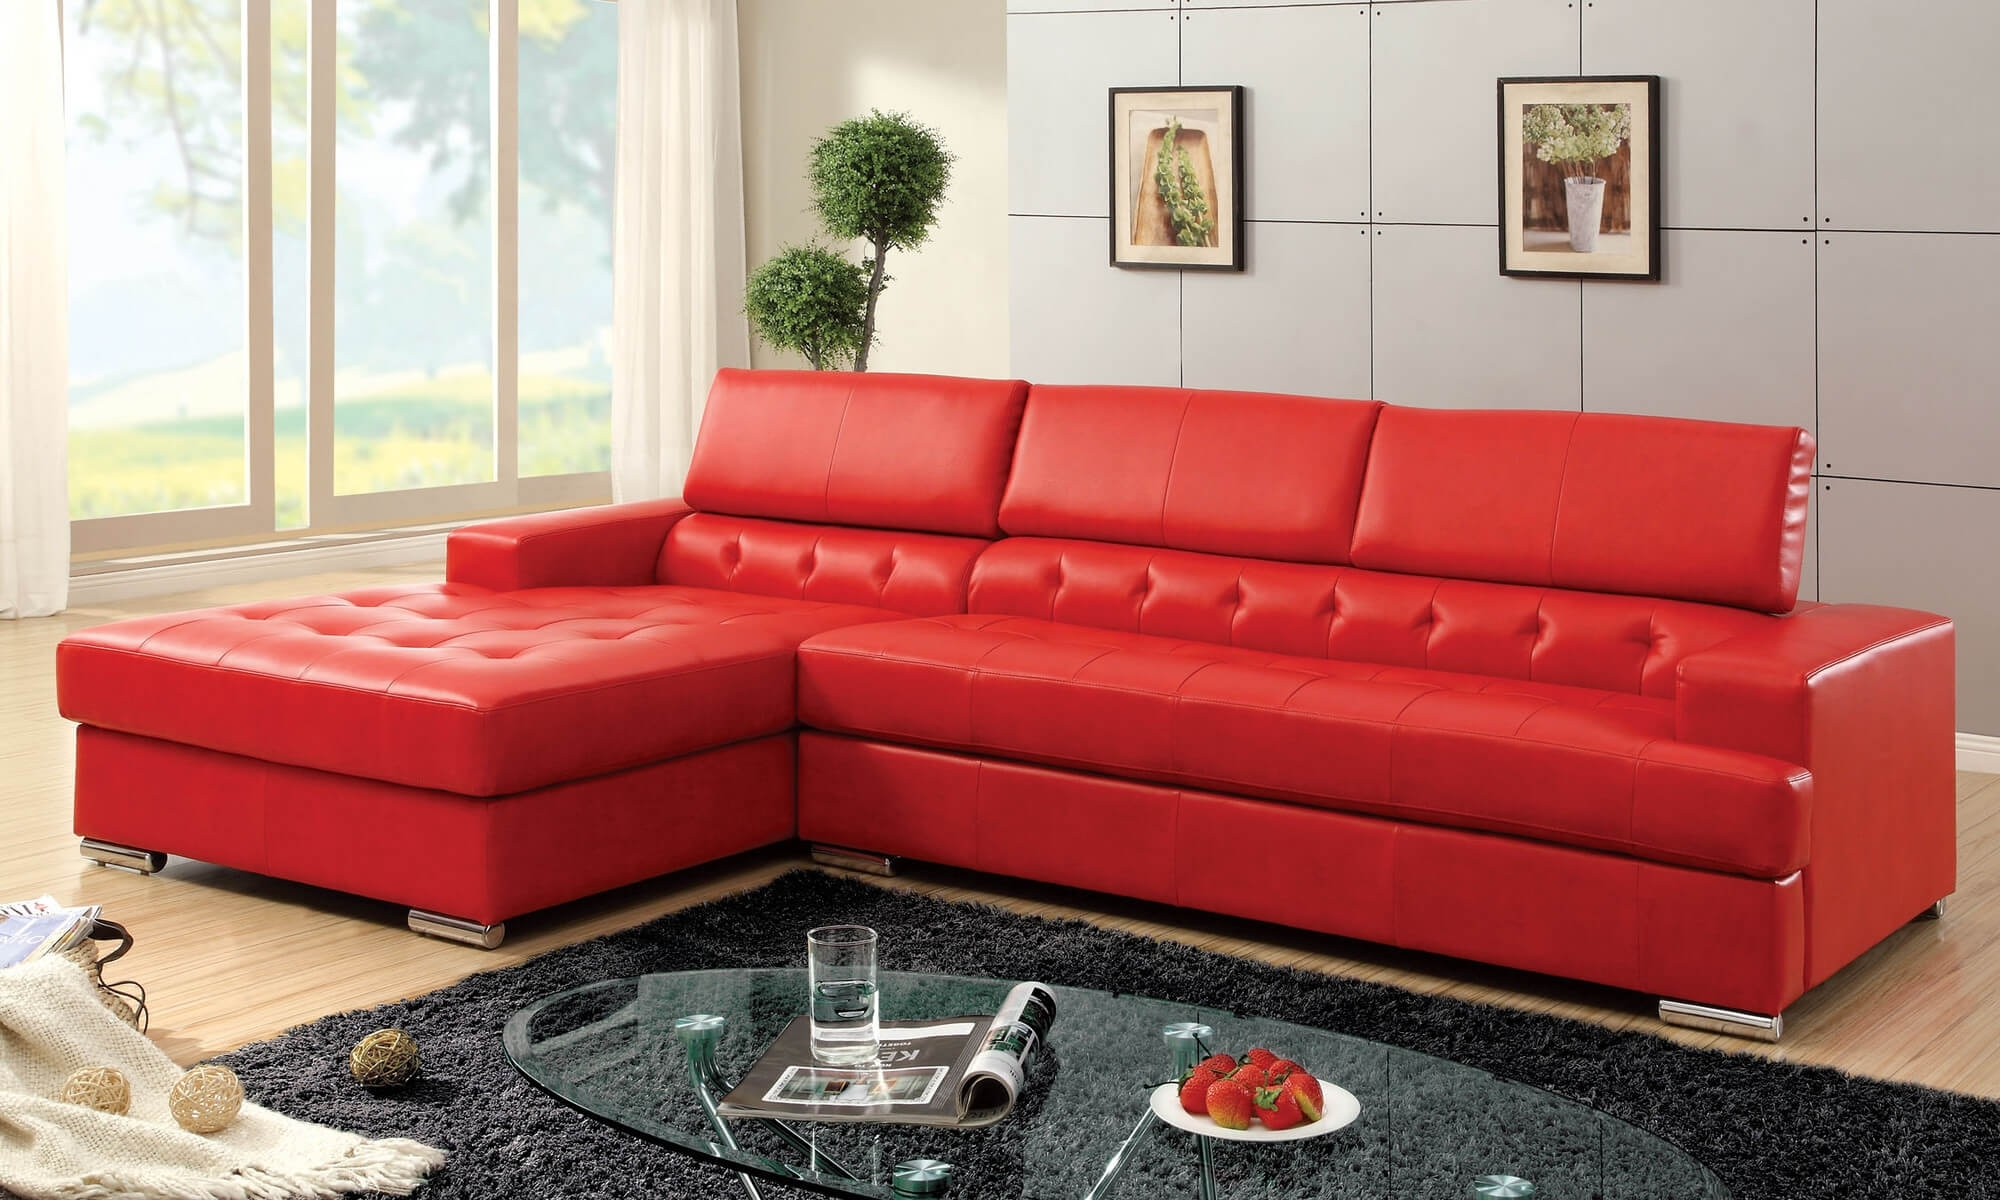 Reliable Red Modern Sofa 18 Stylish Sectional Sofas | Www With Regard To Kingston Ontario Sectional Sofas (View 2 of 10)